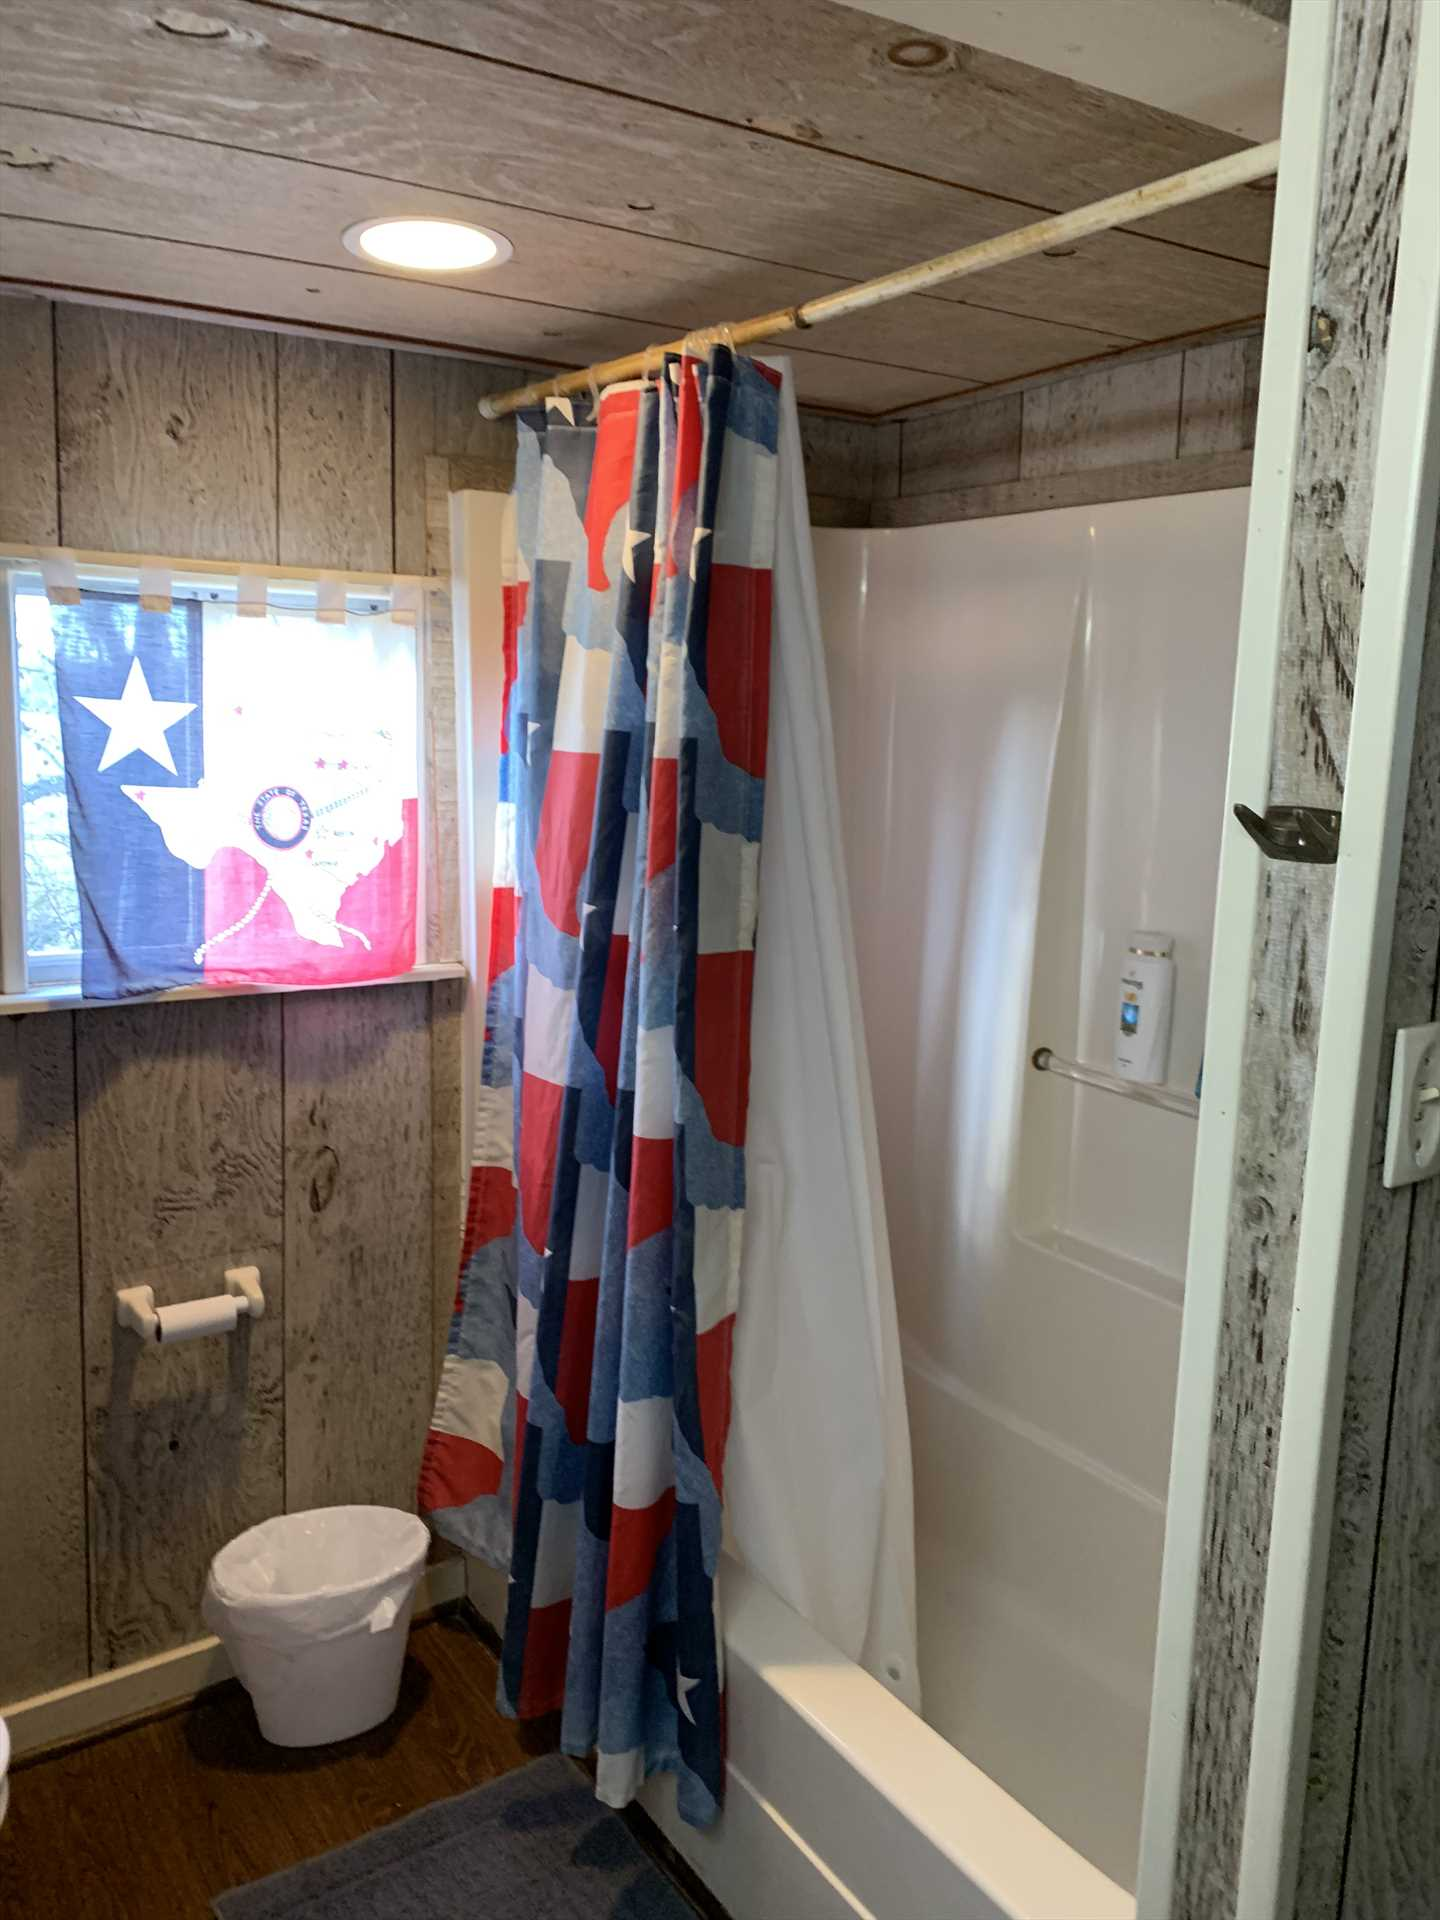 The Texas-themed bath includes a tub and shower combo, and all bed and bath linens for your stay are included, too!